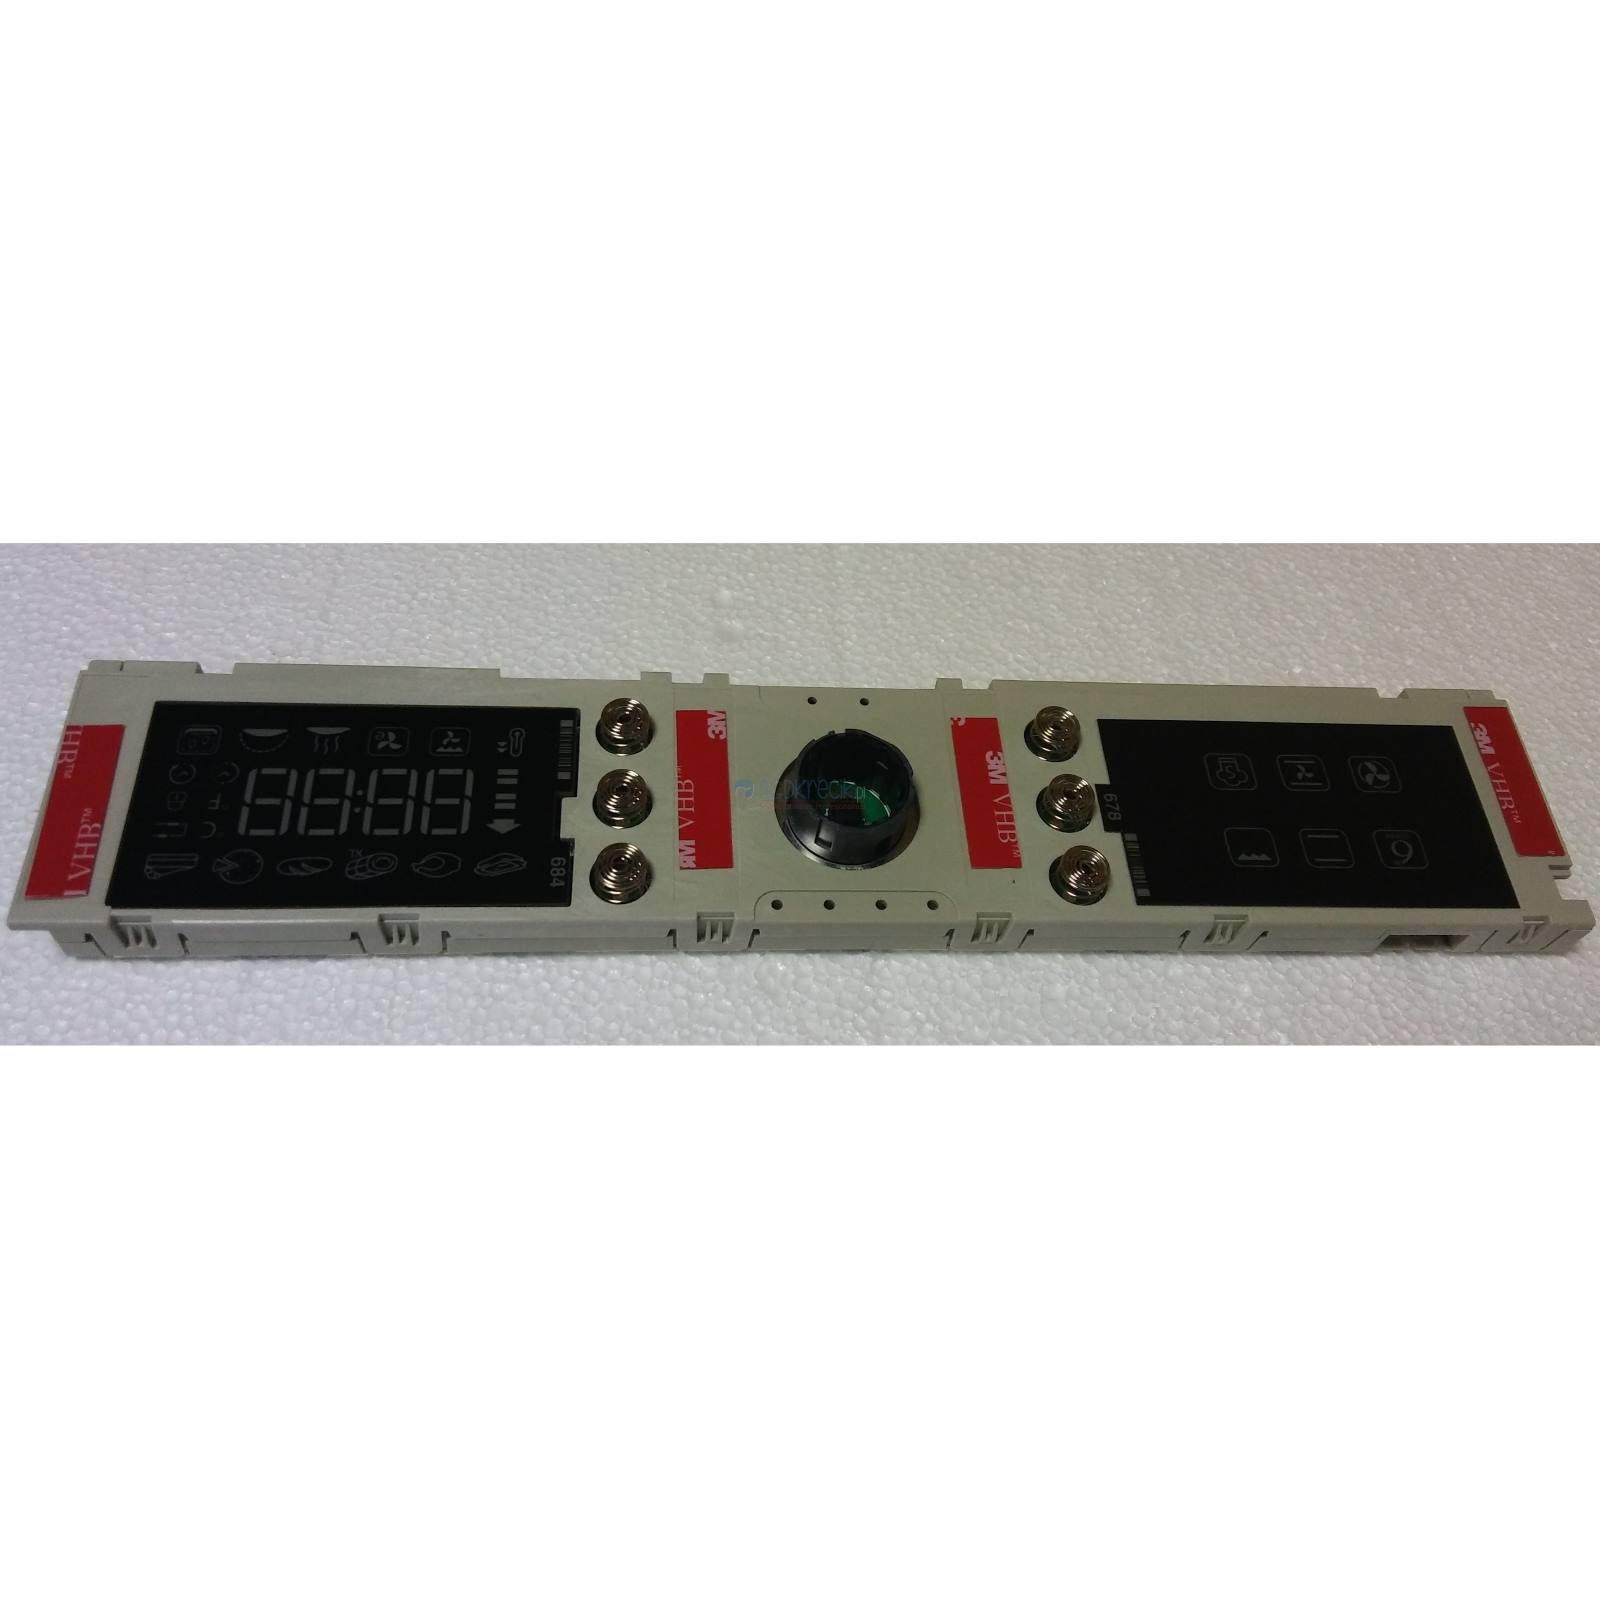 4810-107-82786 Display unit VBL D1